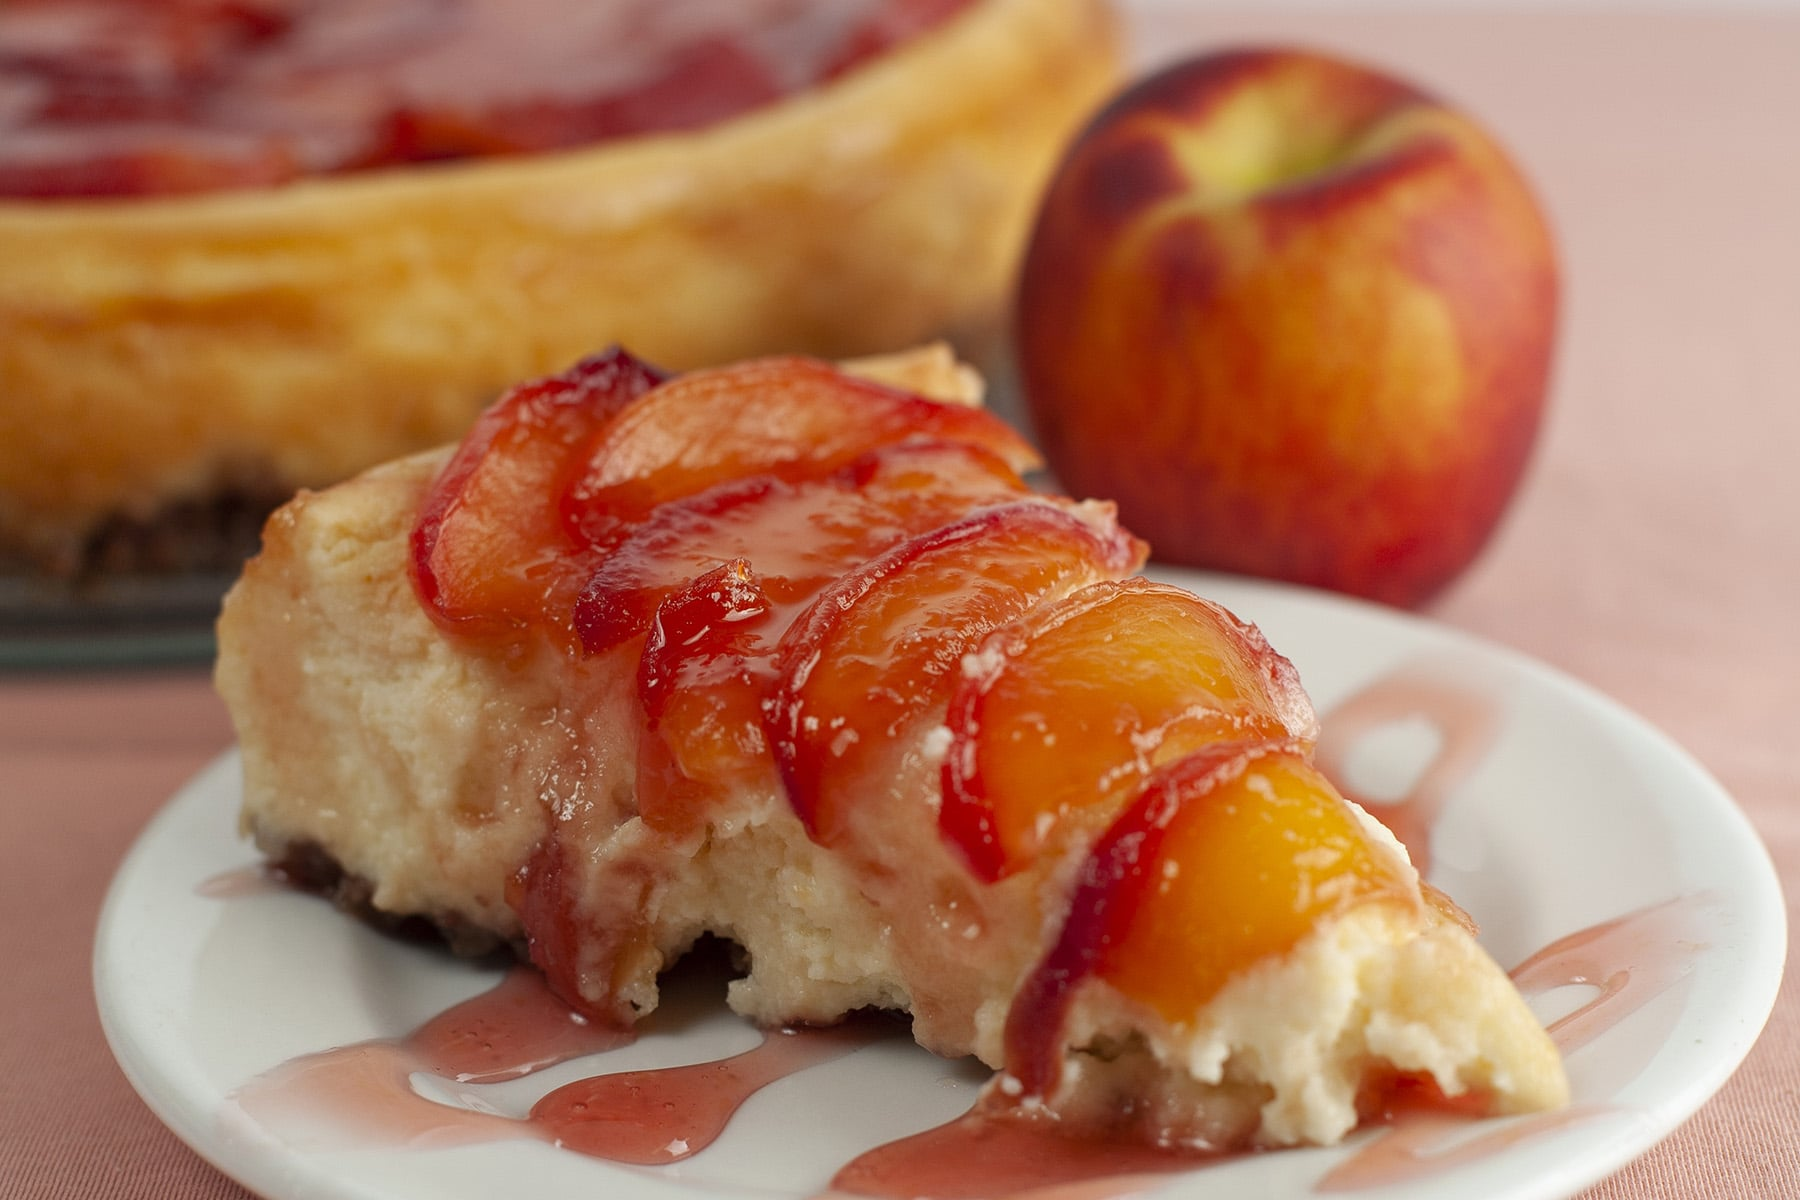 A slice of peachy southern comfort cheesecake, in front of the whole cheeseacake and a fresh peach.